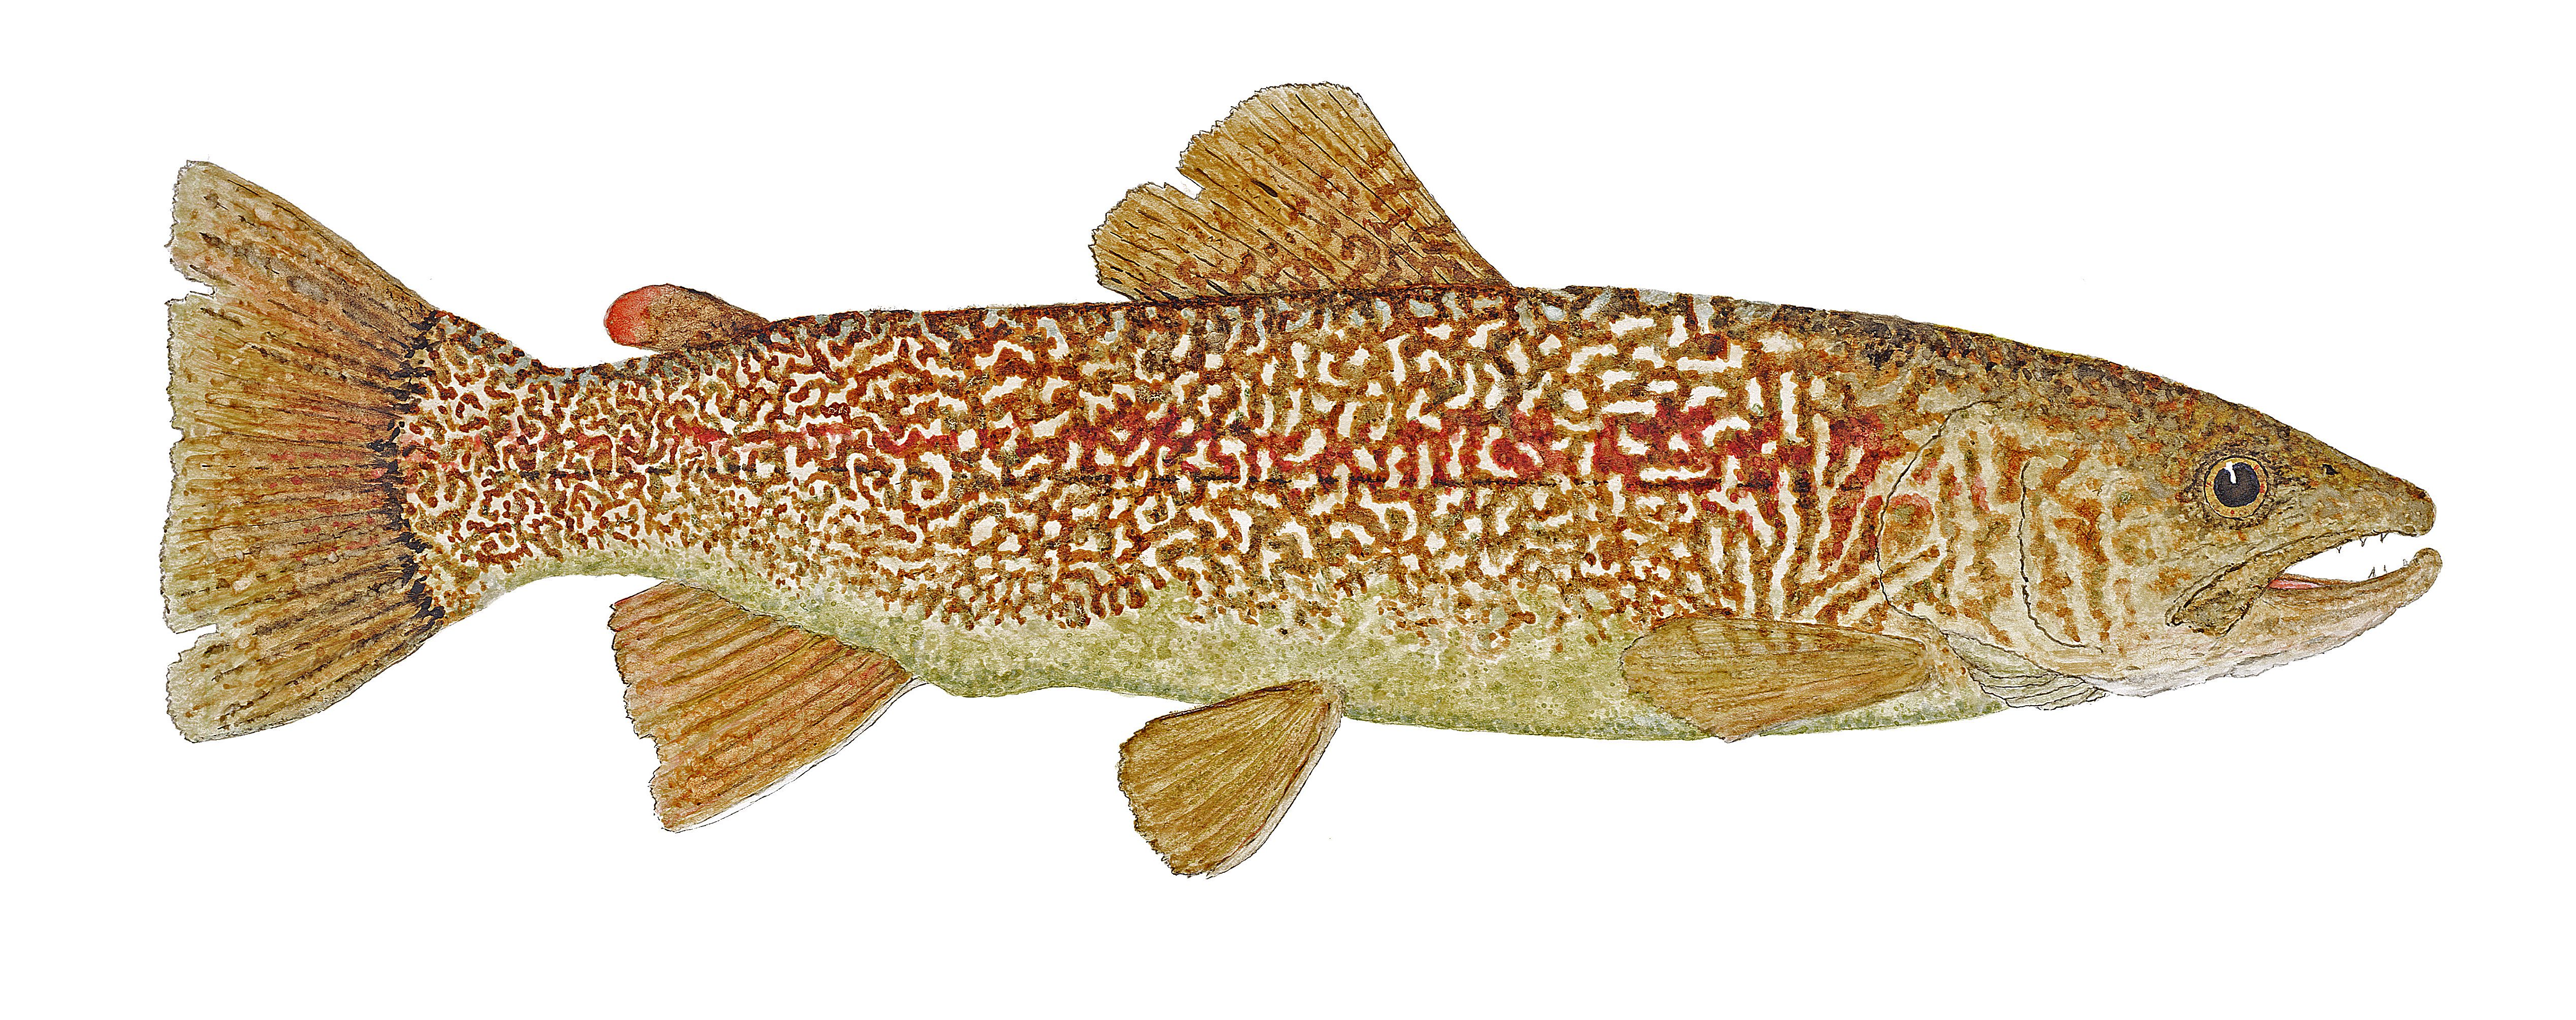 watercolor study of the marble trout found in the julian alps of